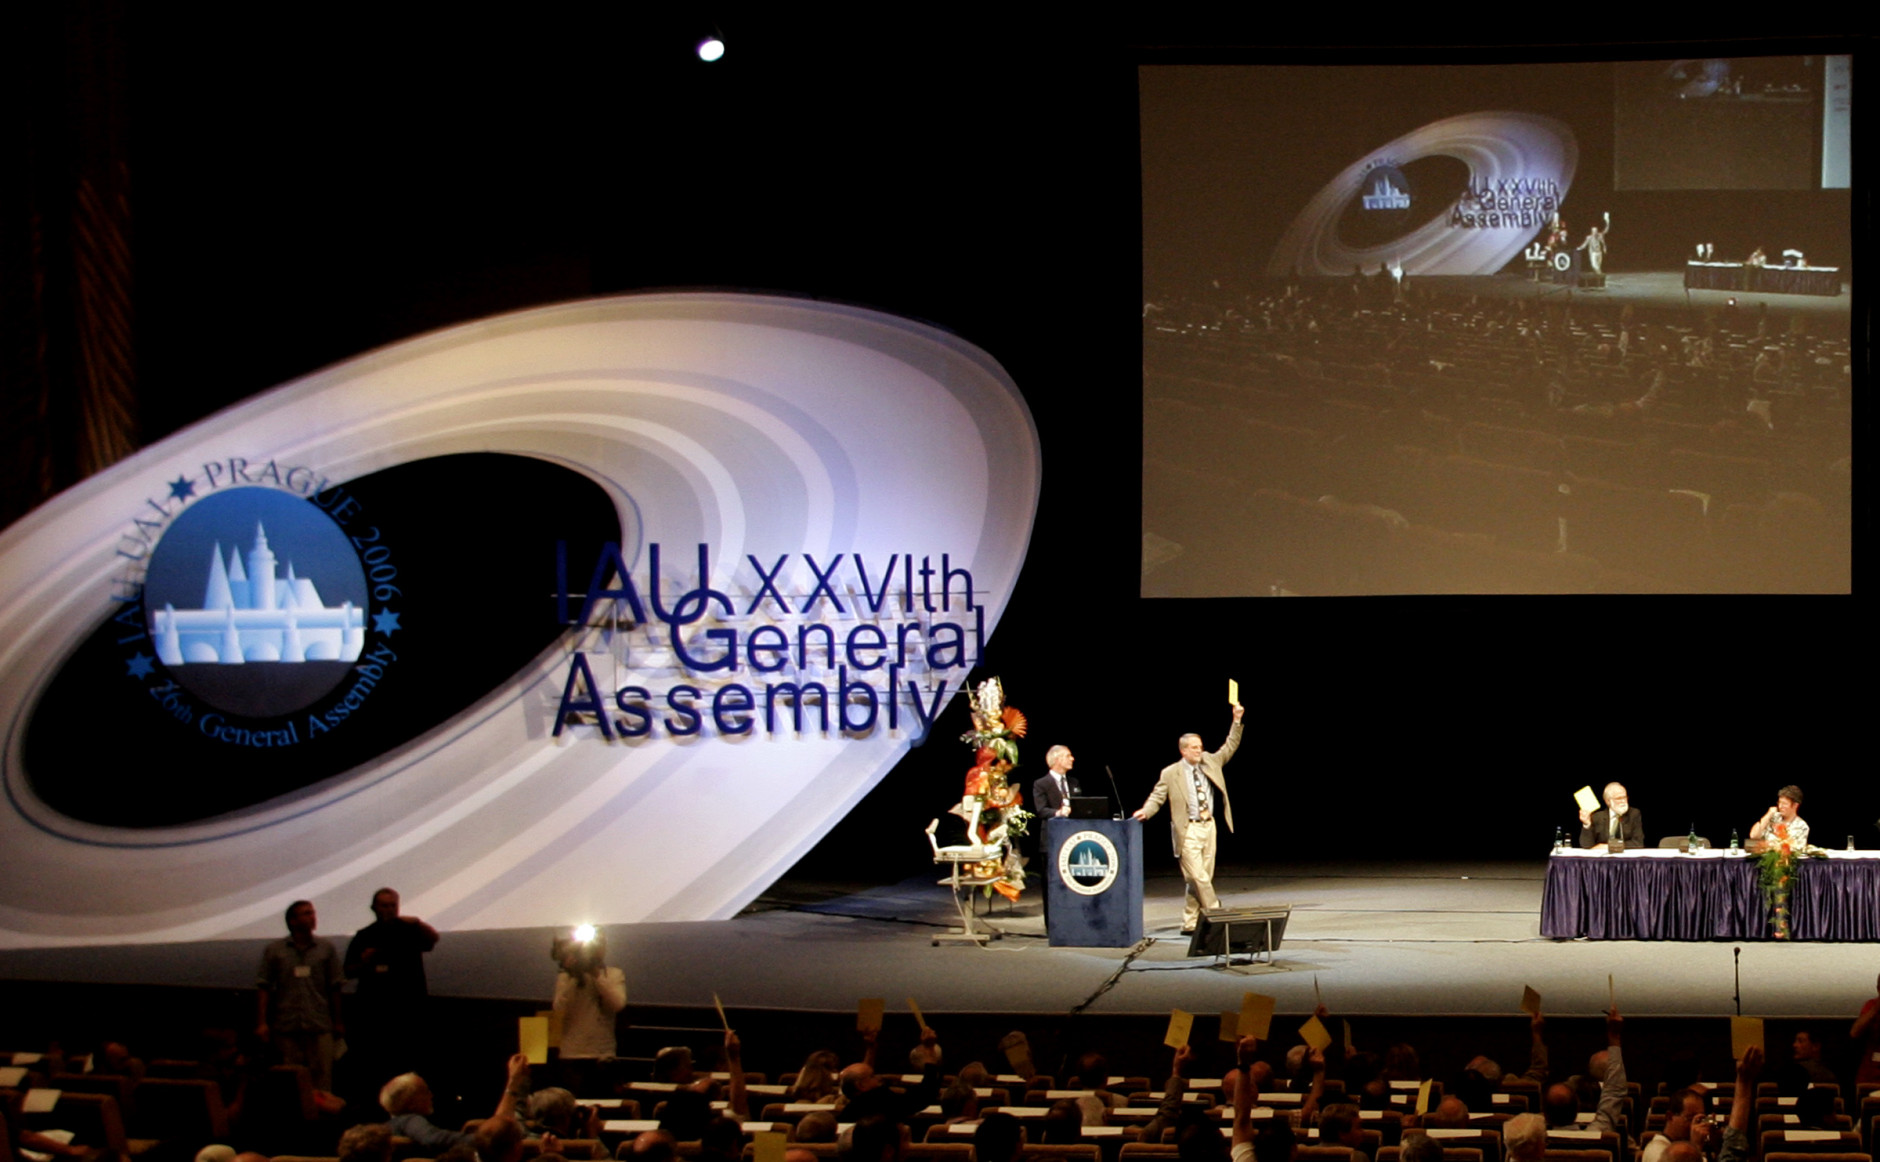 """On this date in 2006, the International Astronomical Union declared that Pluto was no longer a planet, demoting it to the status of a """"dwarf planet."""" Here, members of the IAU are seen voting on the issue. (AP Photo/Petr David Josek)"""